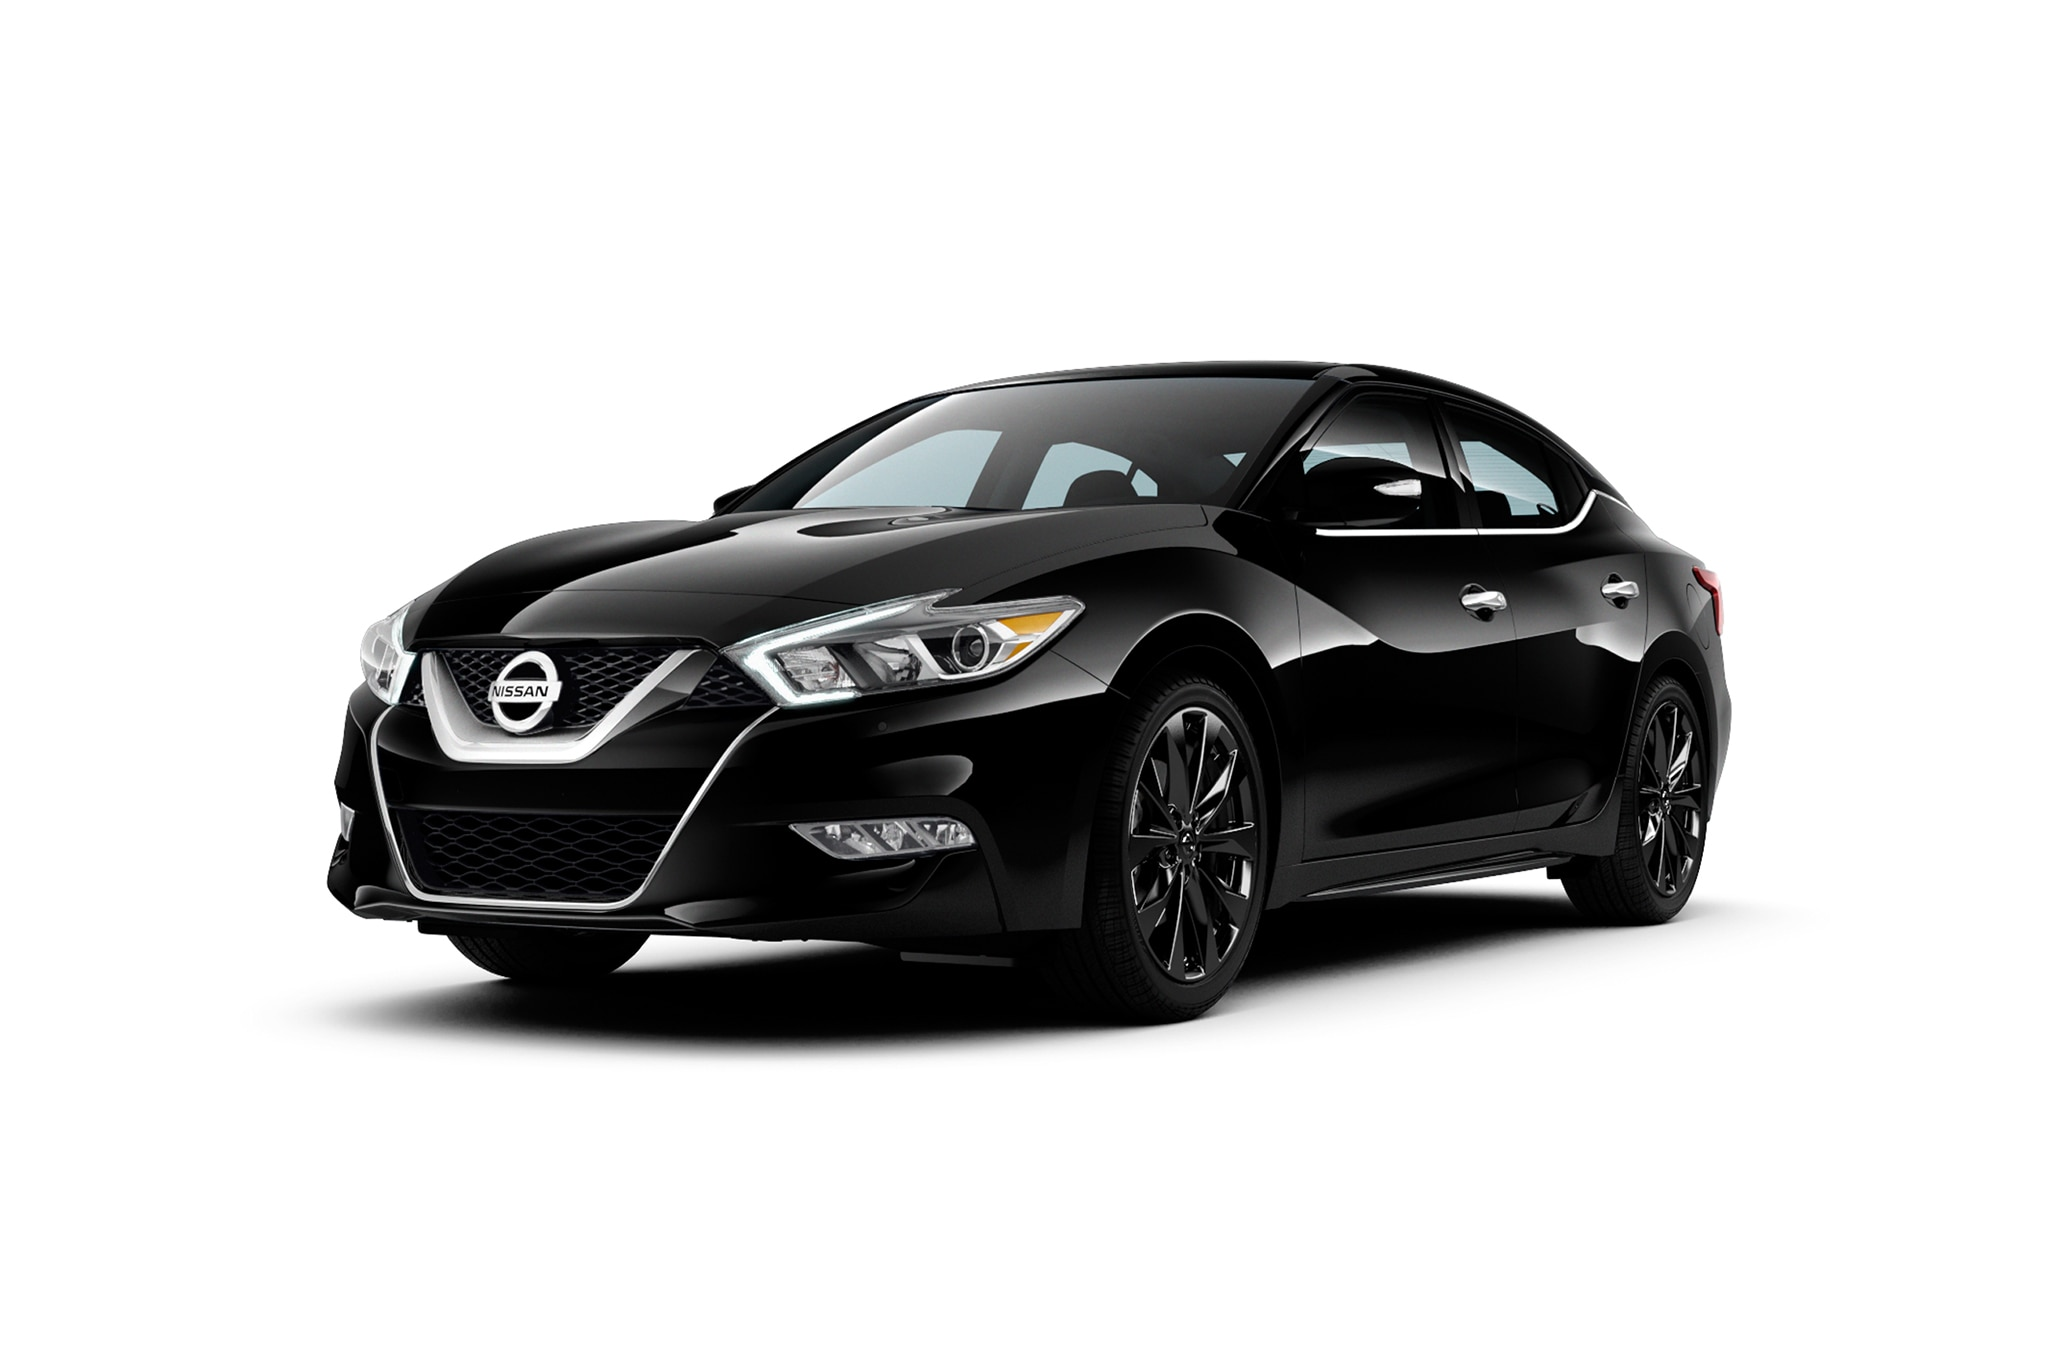 2017 Nissan Maxima front three quarter 2017 nissan maxima sr one week with automobile magazine mazda mx5 heated rear window wiring diagram at bakdesigns.co